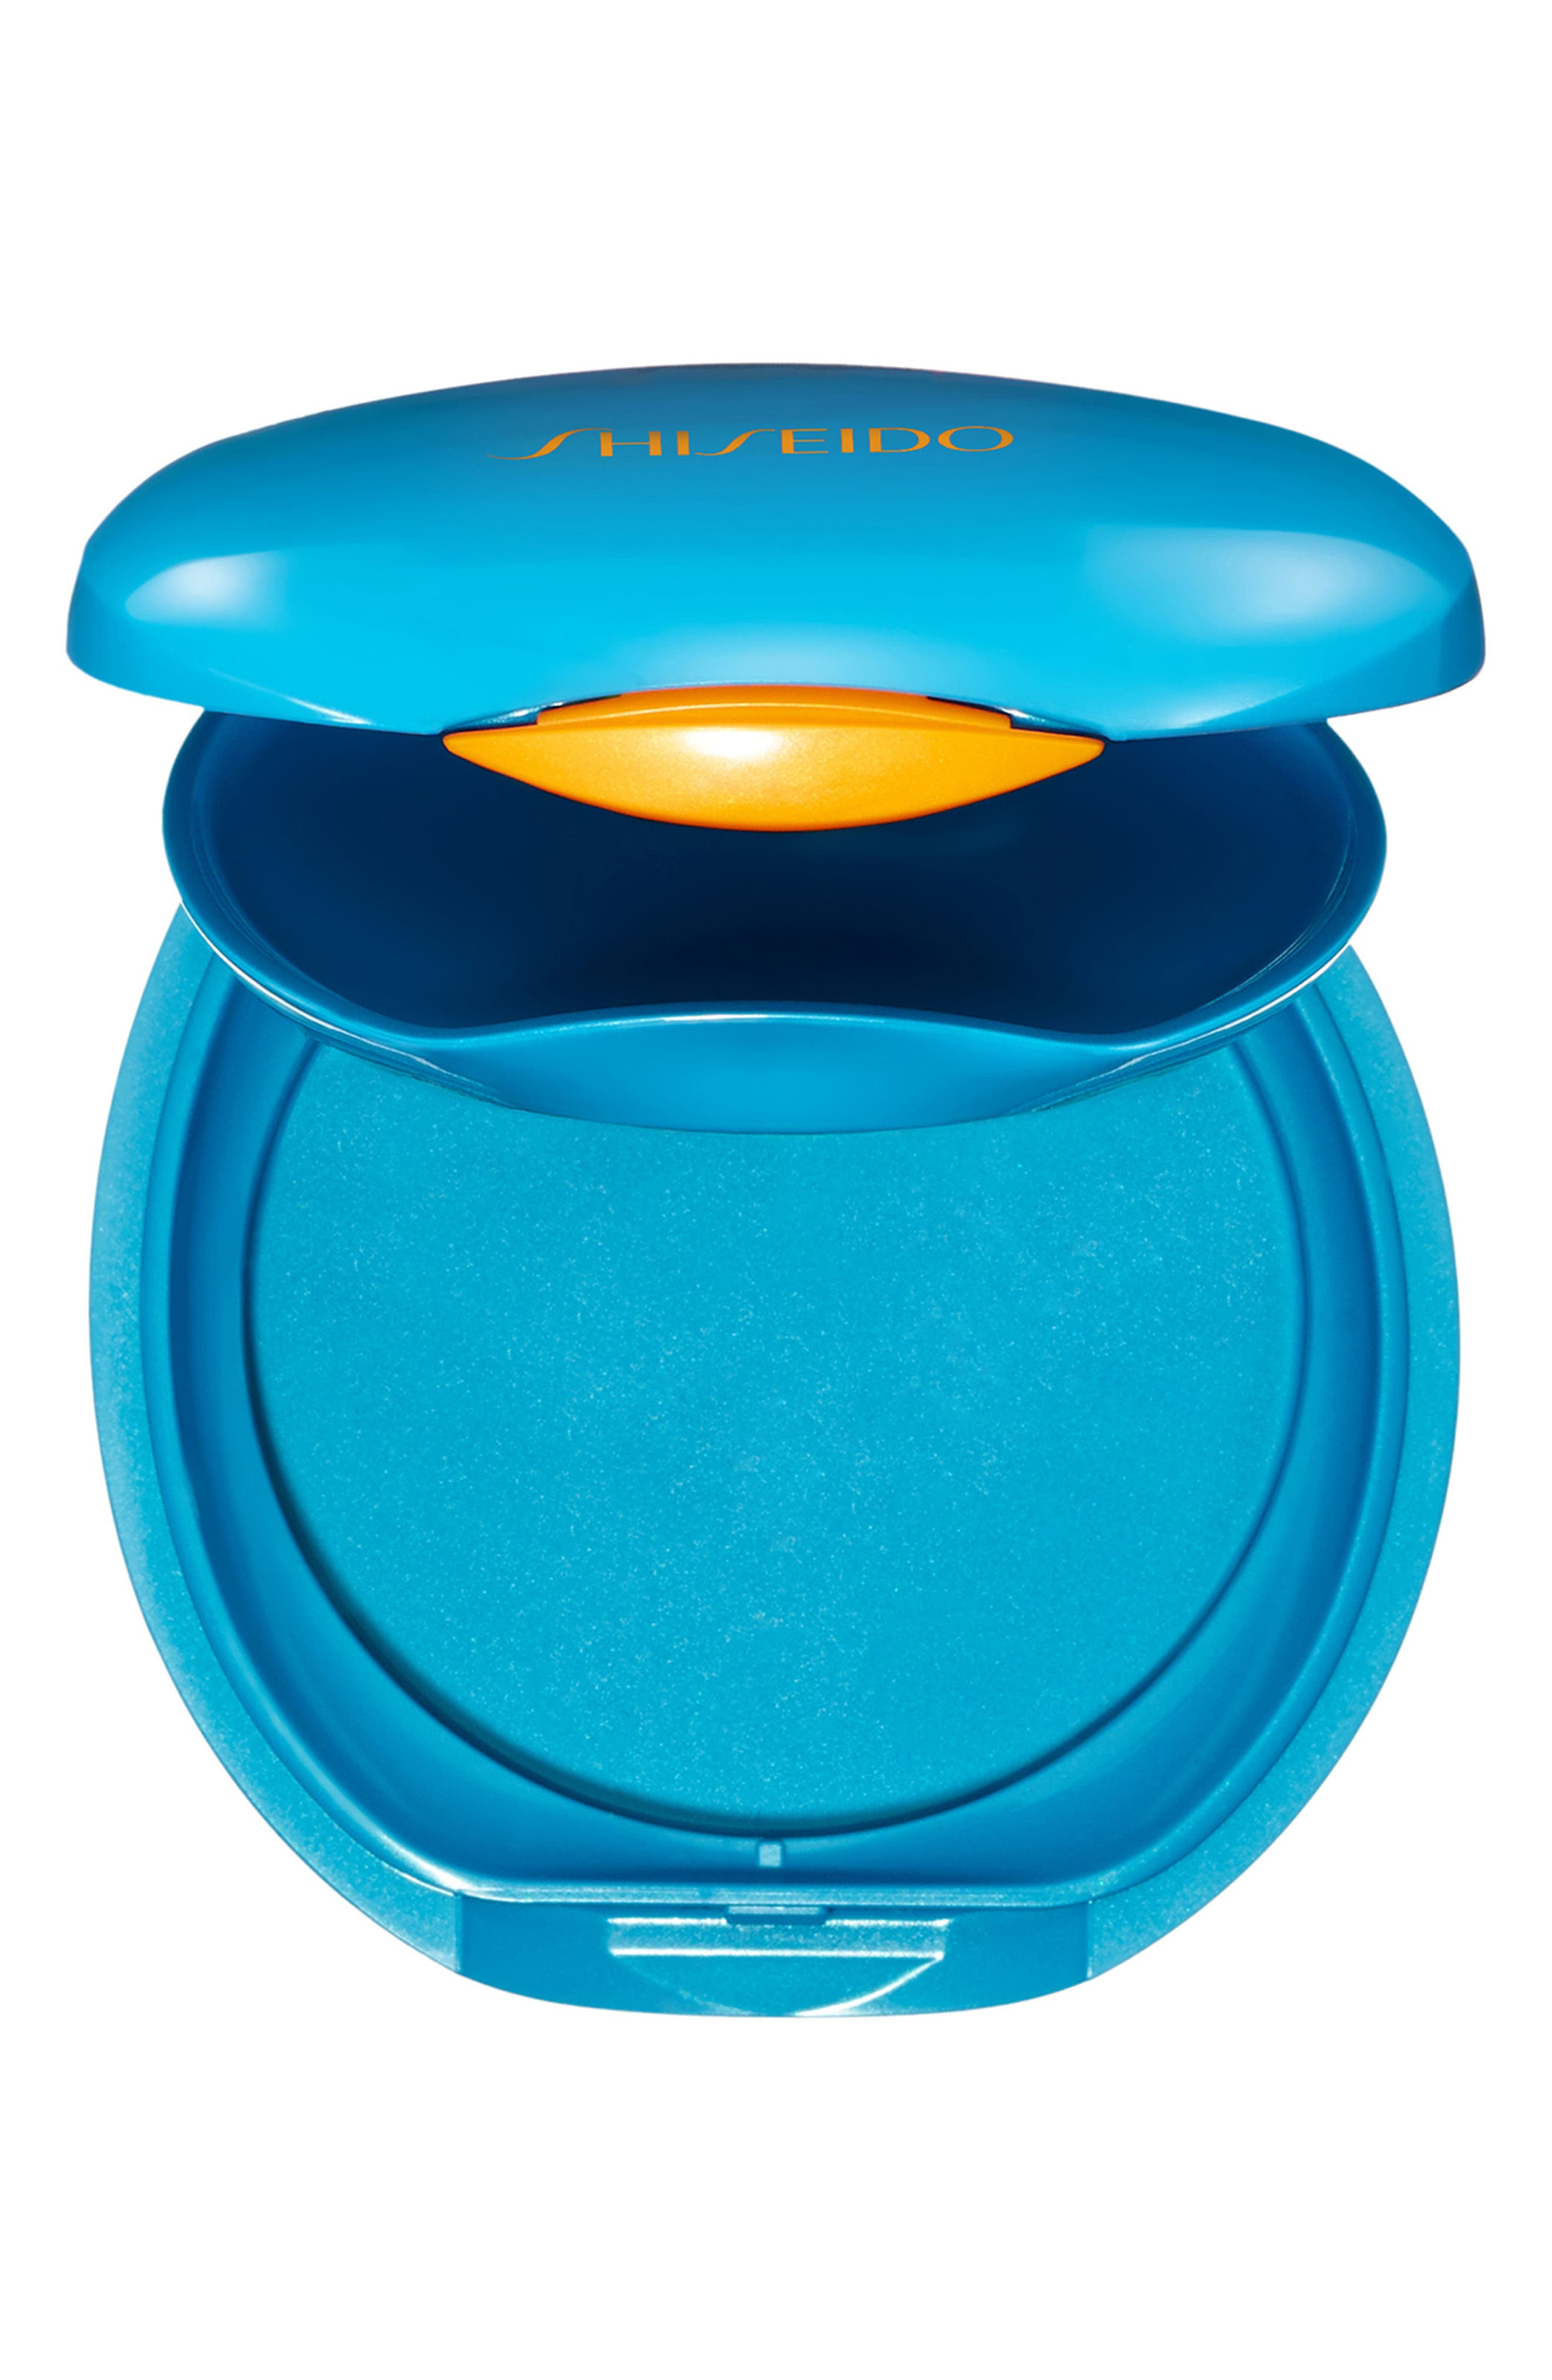 Alternate Image 2  - Shiseido UV Protective Compact Foundation Compact Case